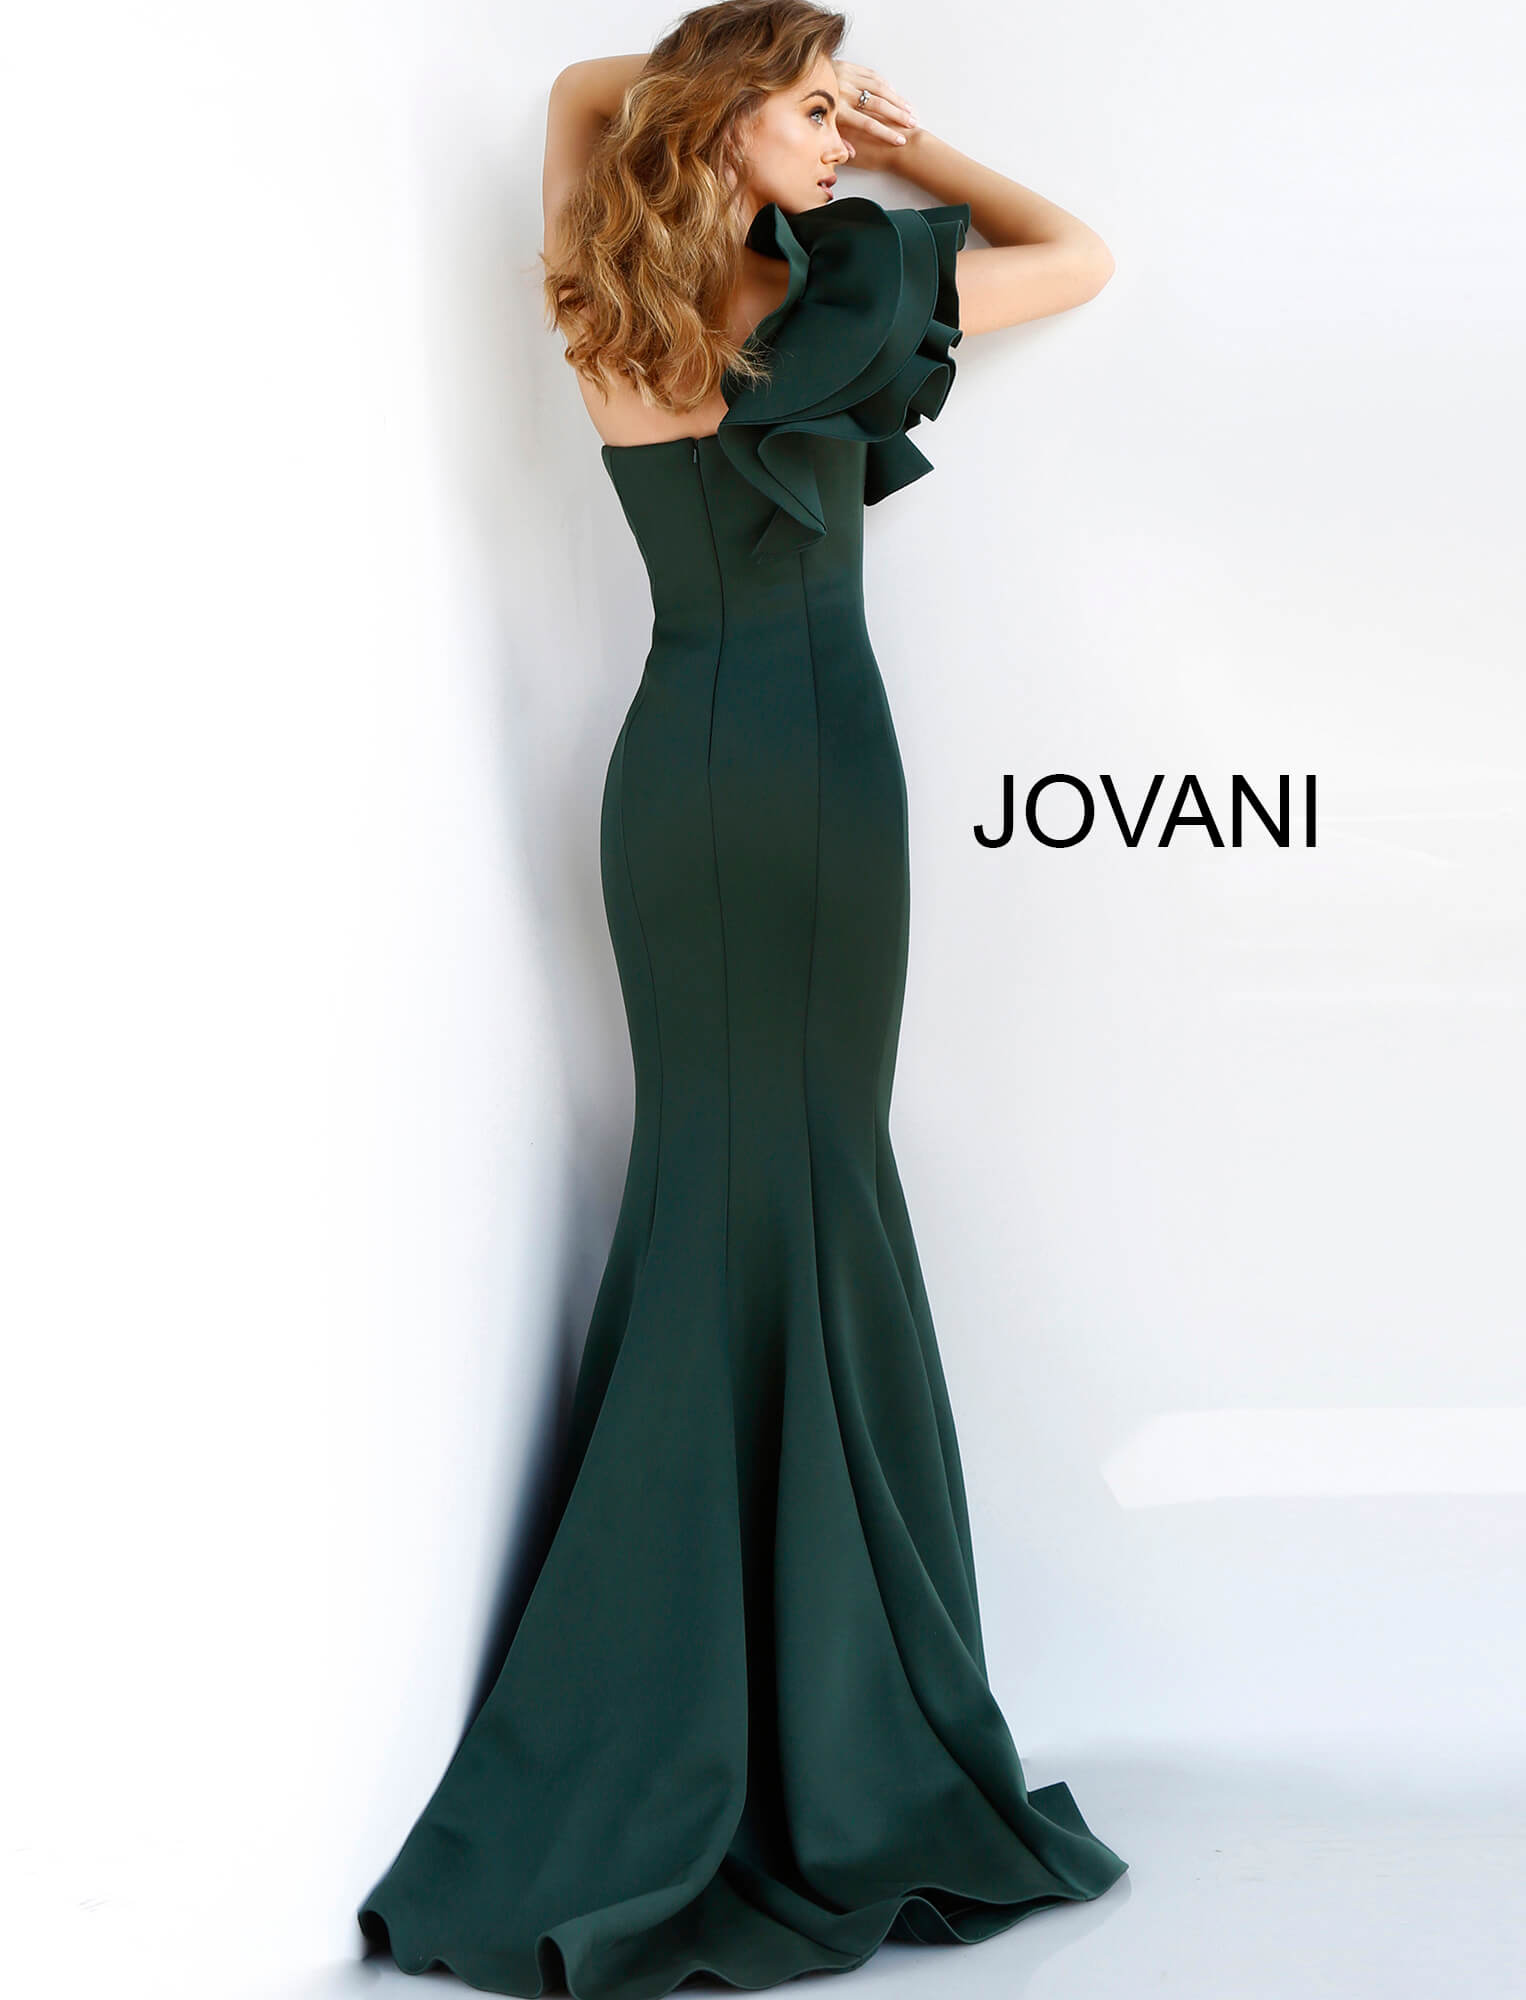 Jovani green scuba formal dress 63994